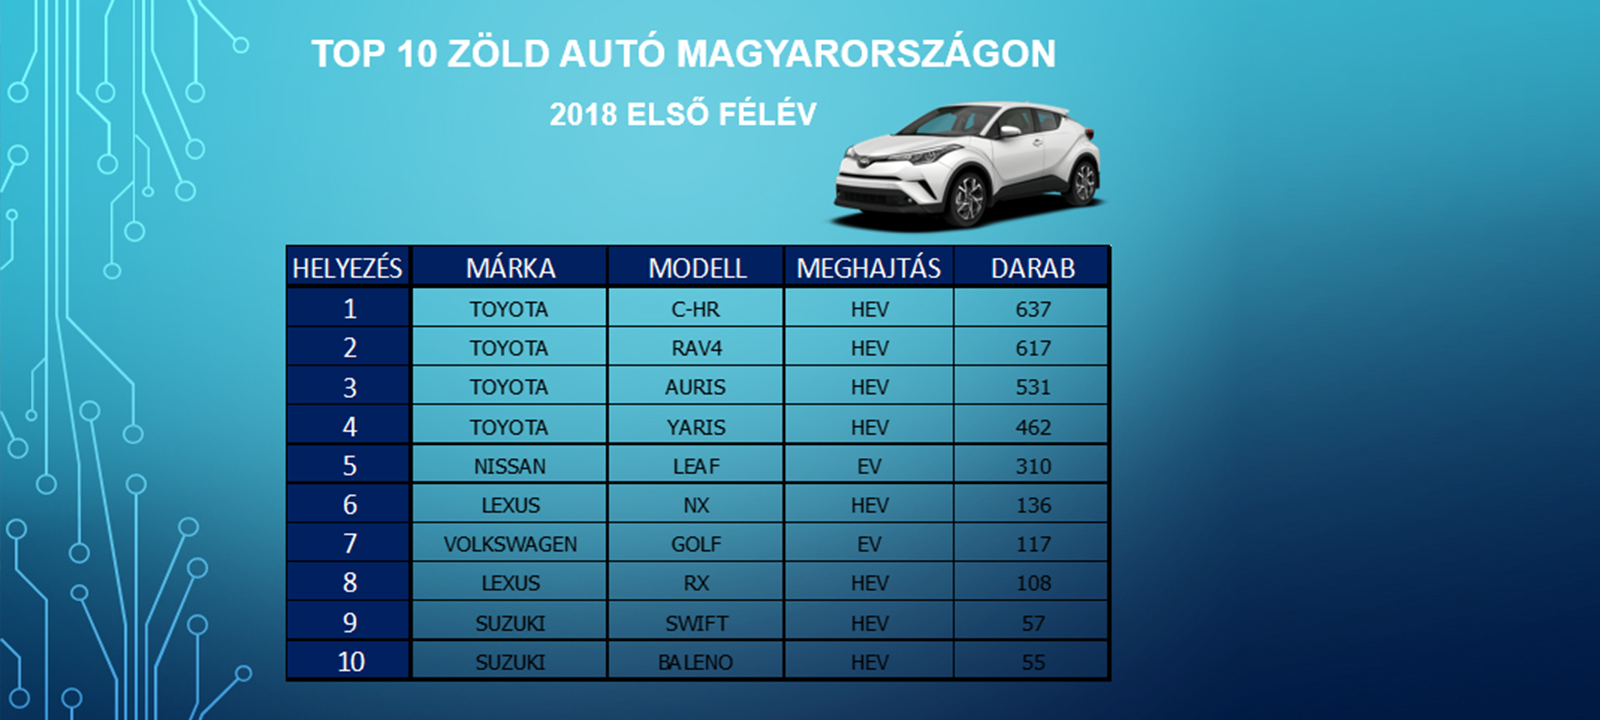 toyota c hr hybrid fovorite green car in hungary full 03 tcm 3033 1482752